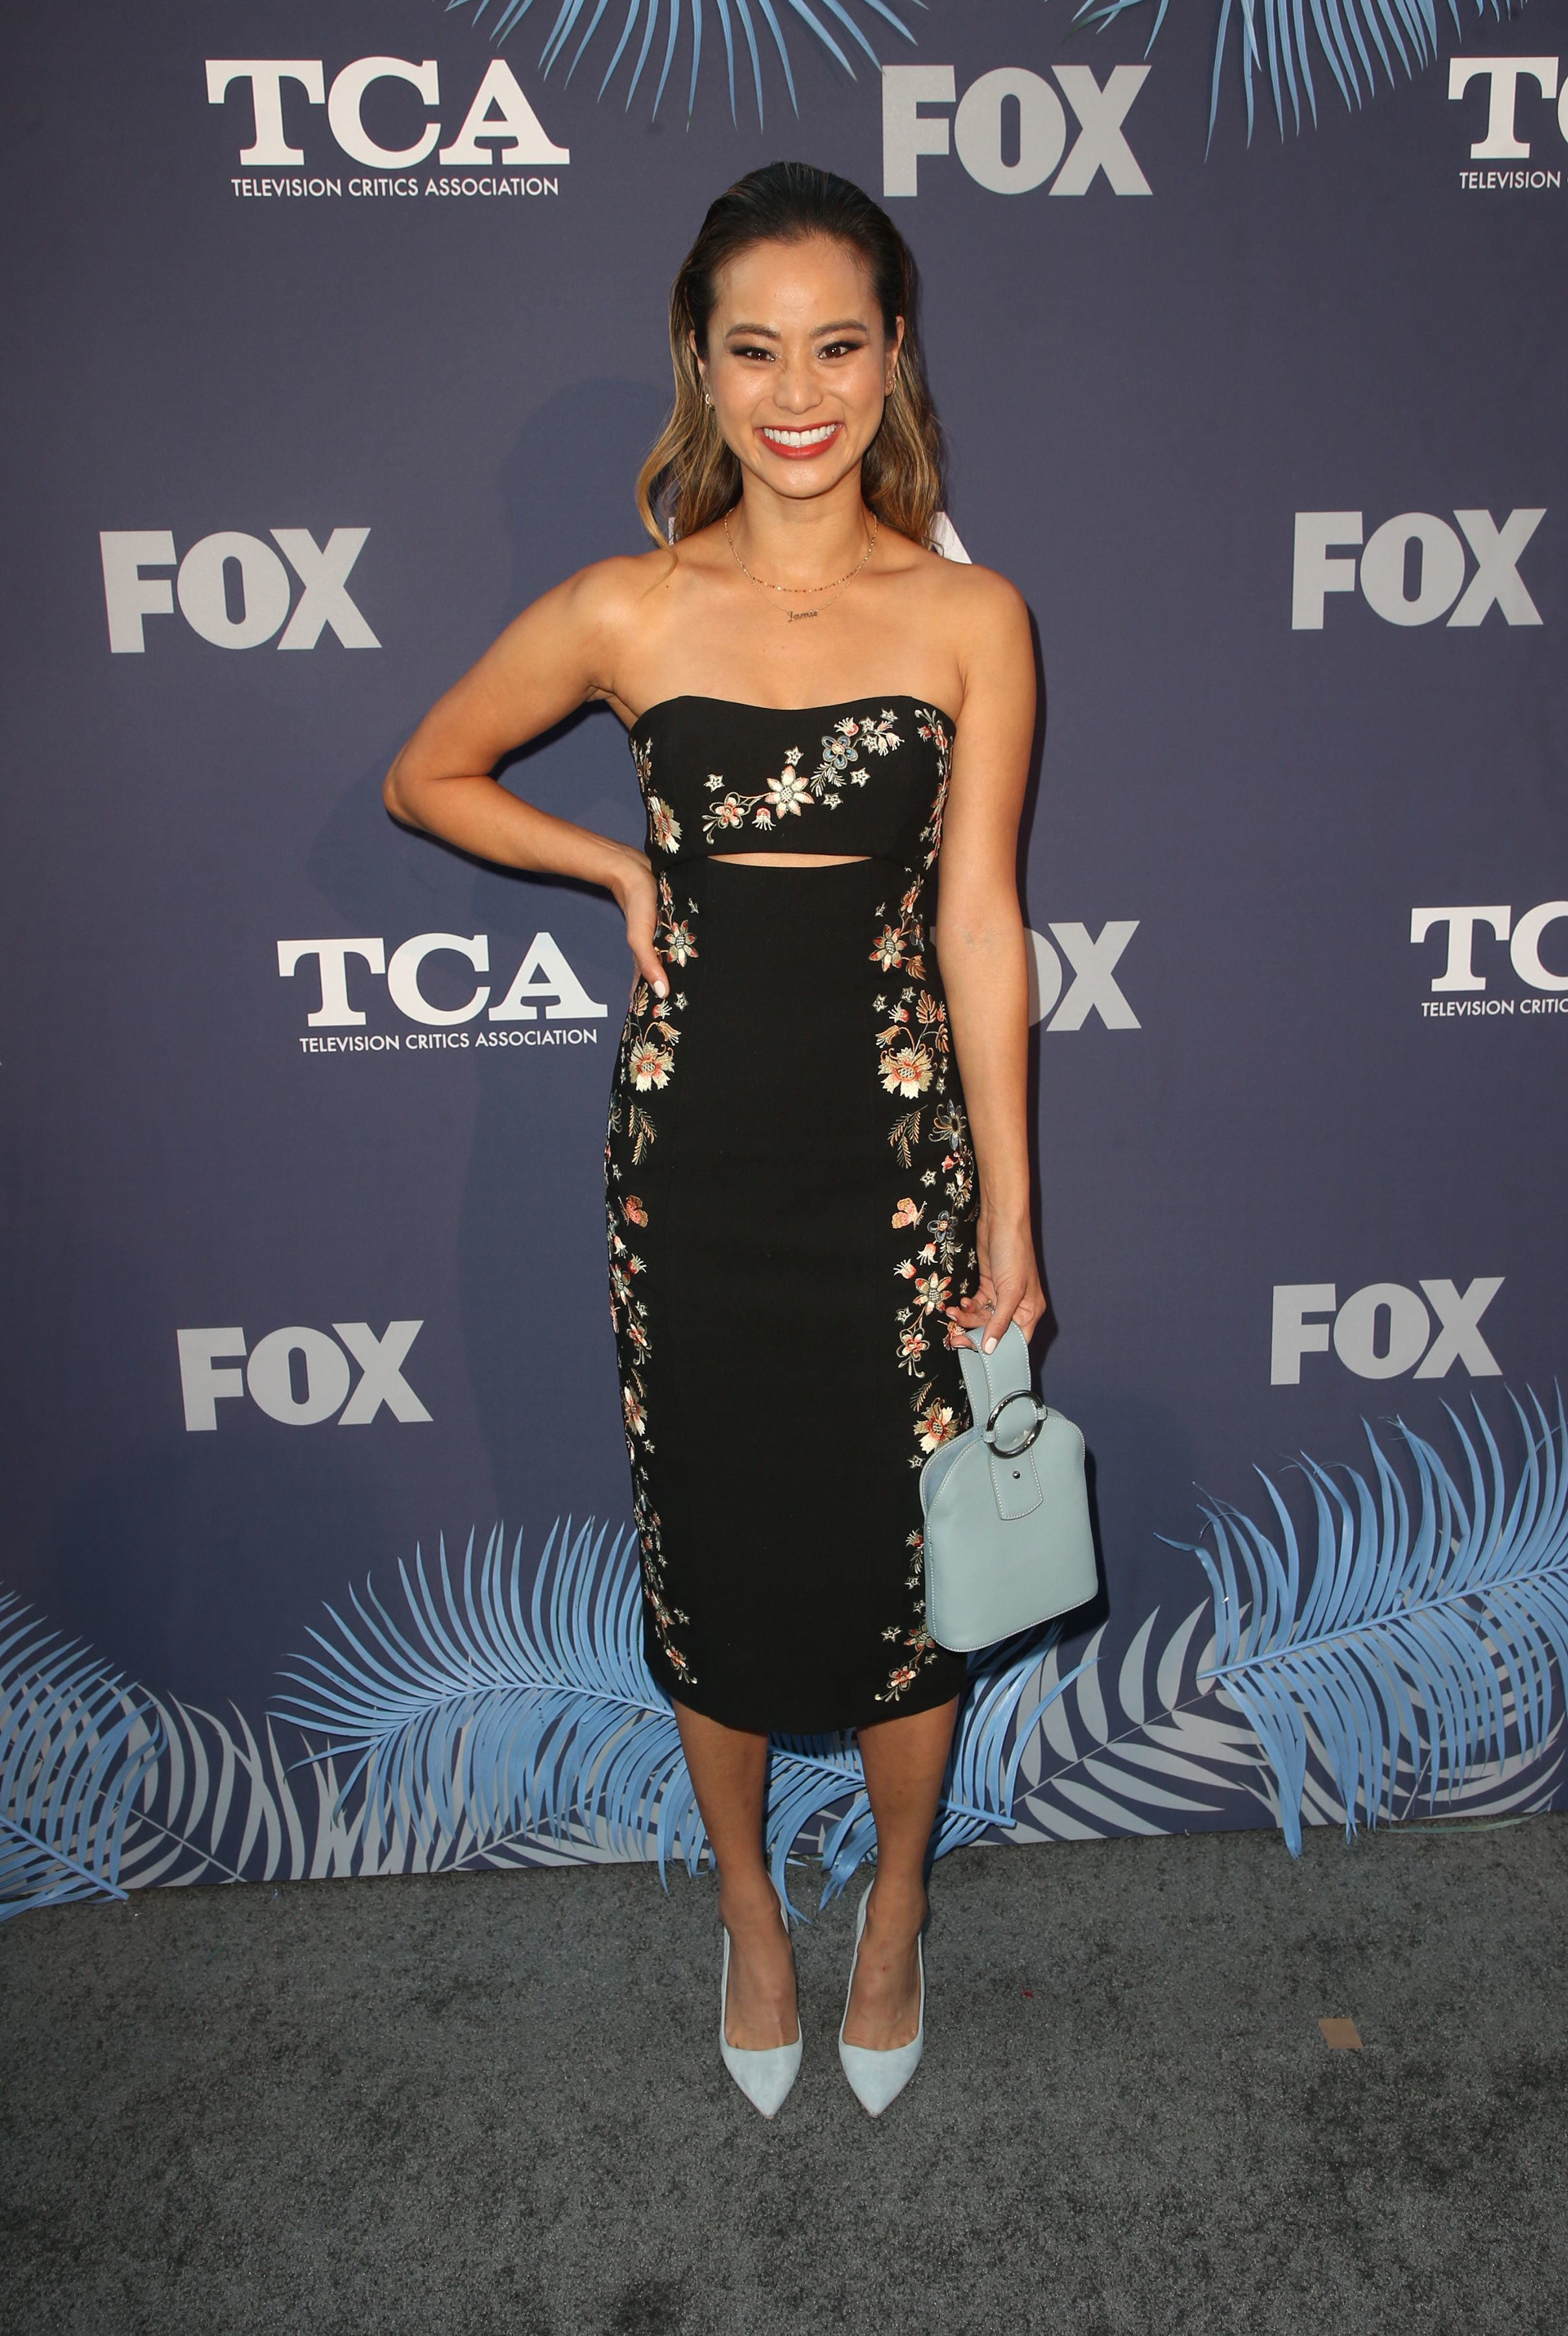 Jamie Chung attends the FOX Summer All Star Party during the TCA Summer Press Tour in Los Angeles on Aug. 2, 2018.